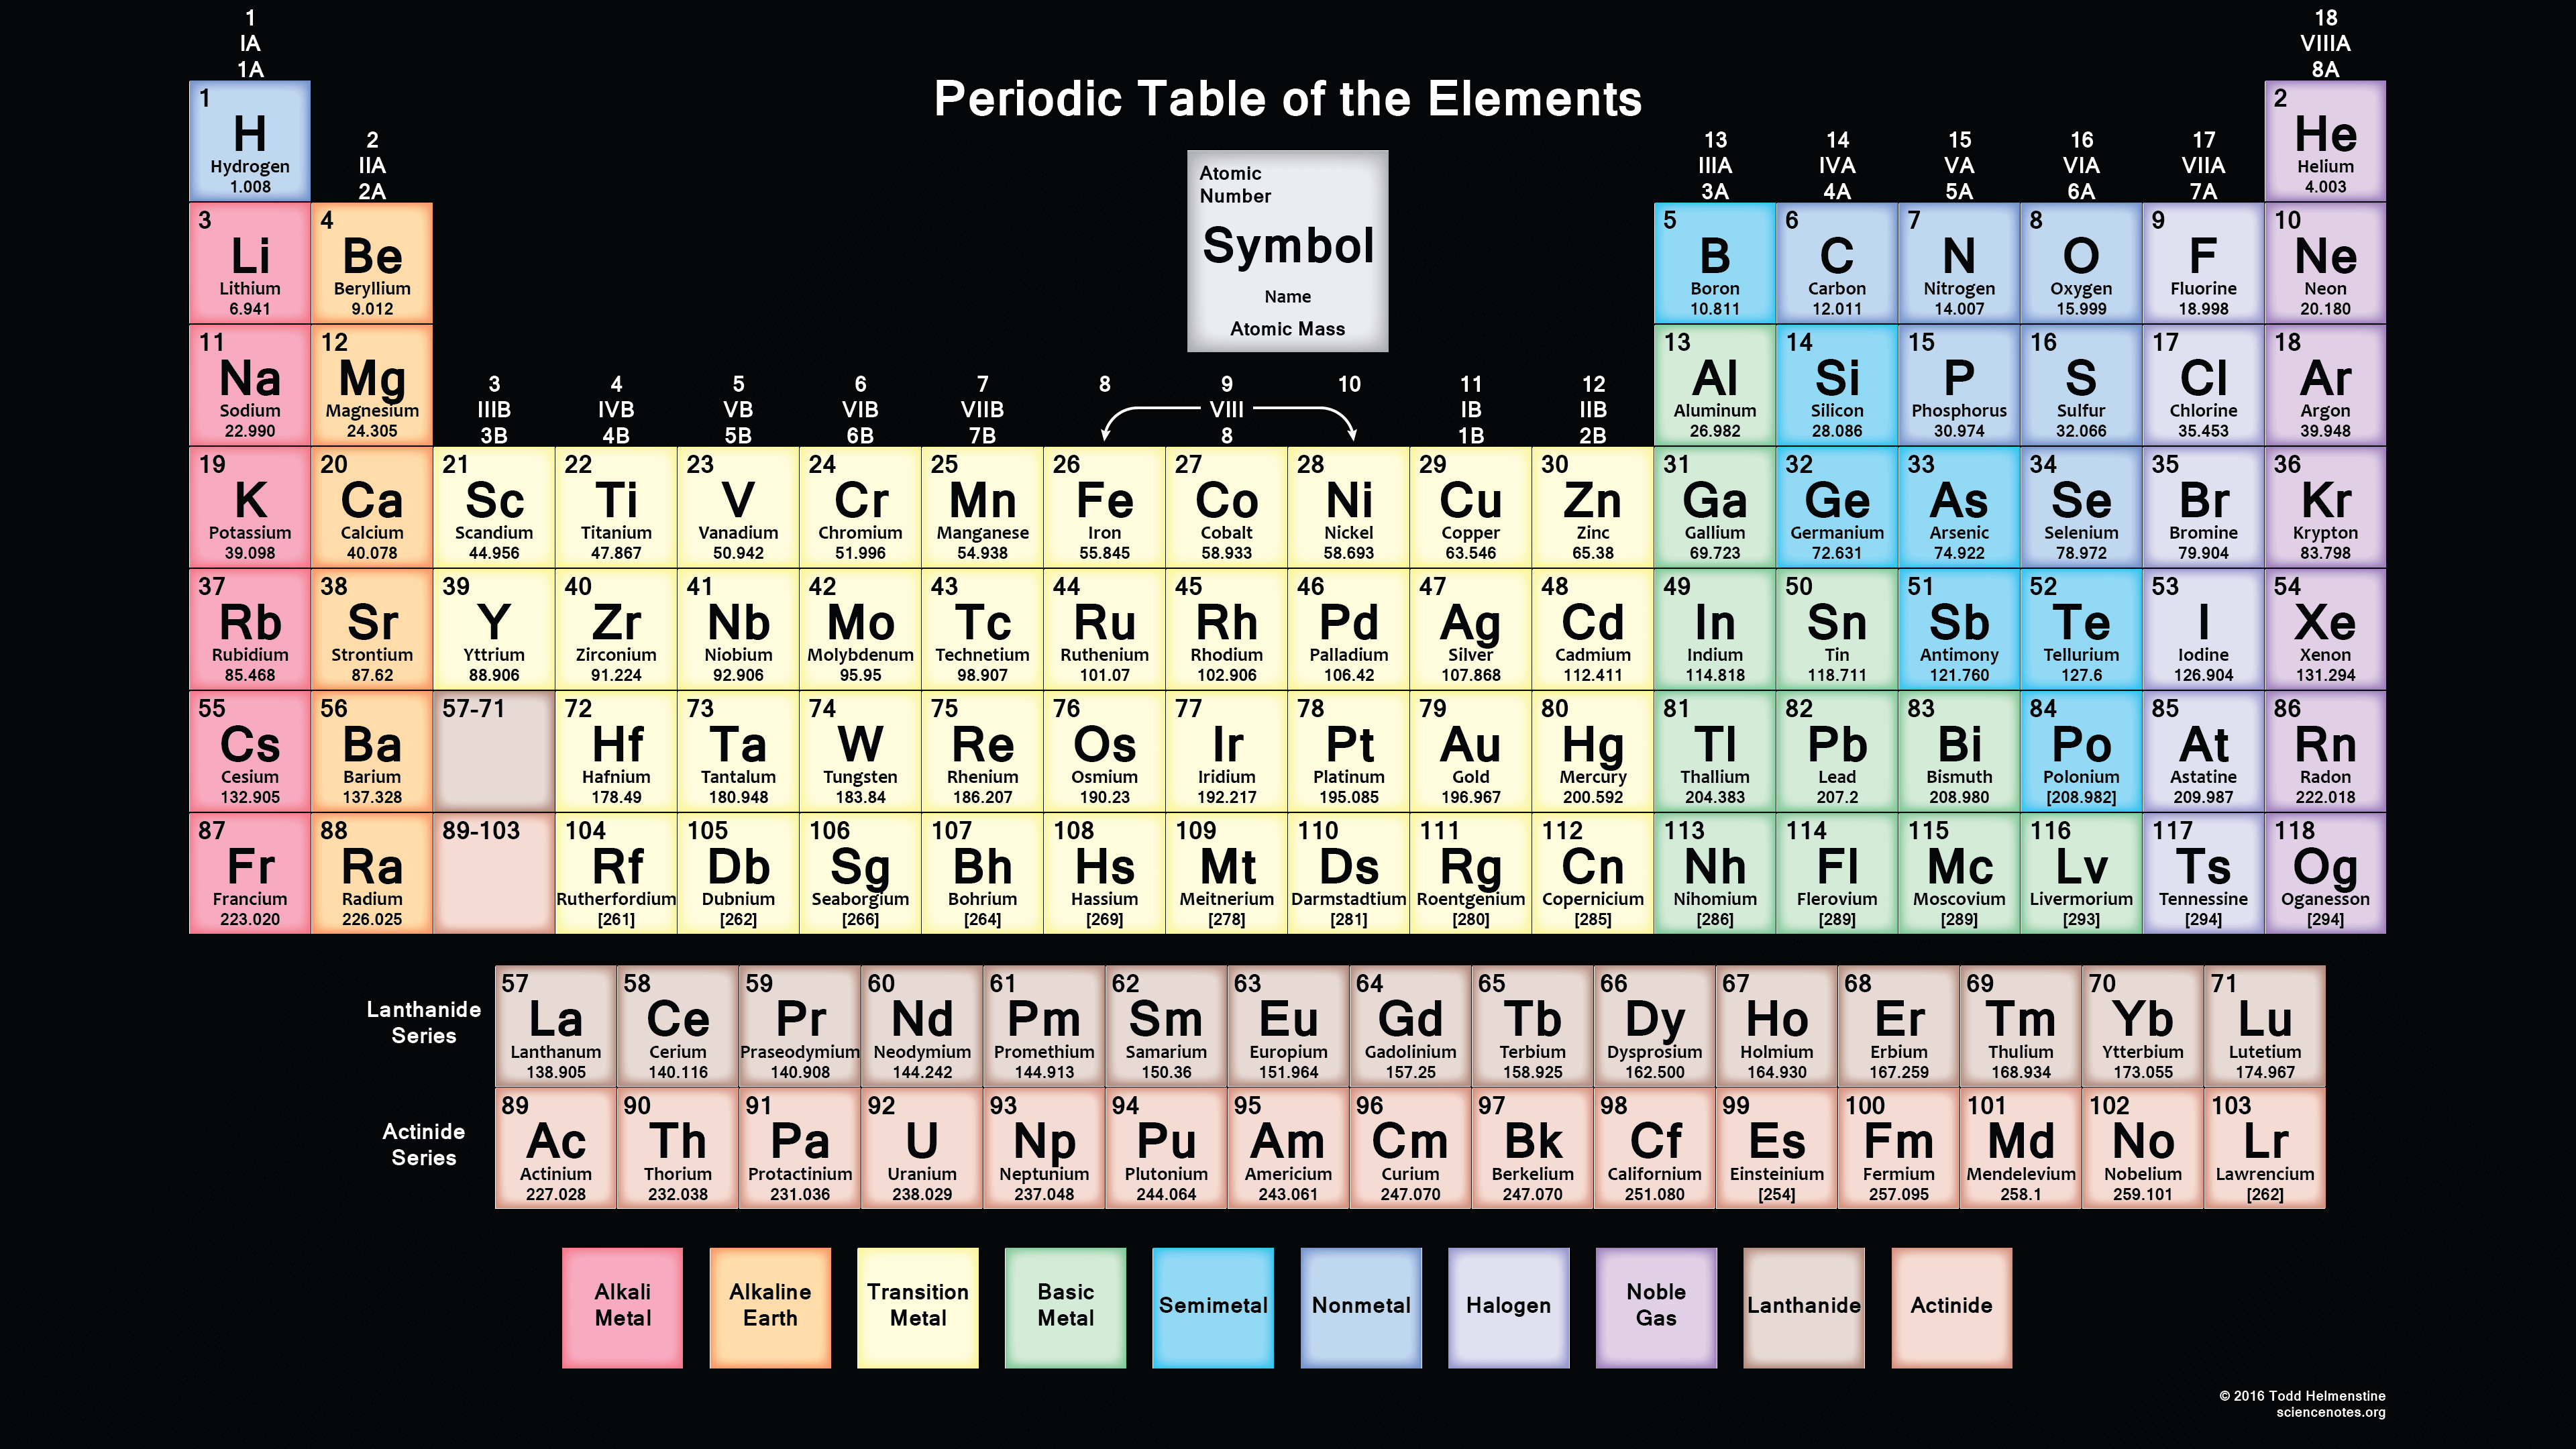 2016 edition periodic table with 118 elements with black background - Periodic Table As Announced By Iupac In 2016